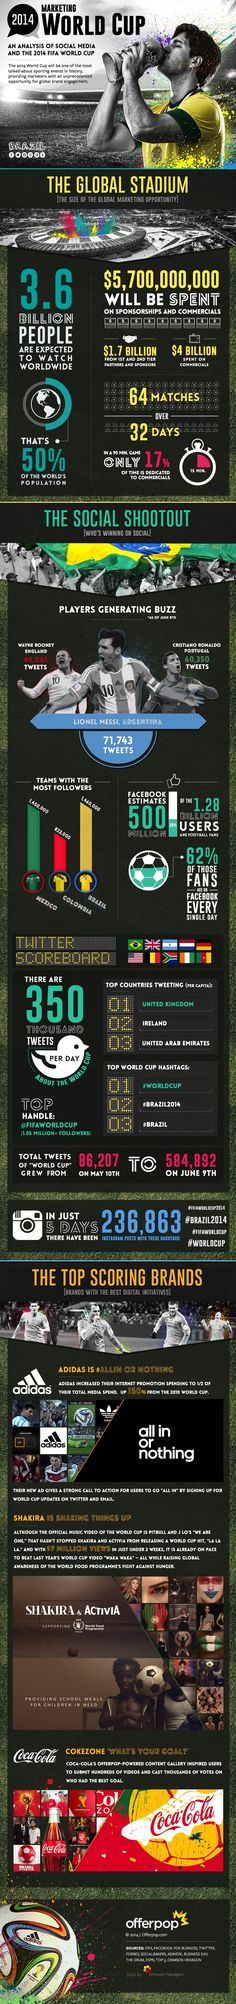 An analysis of social media and the 2014 Fifa World Cup! #worldcup #worldcup2014 #socialmedia